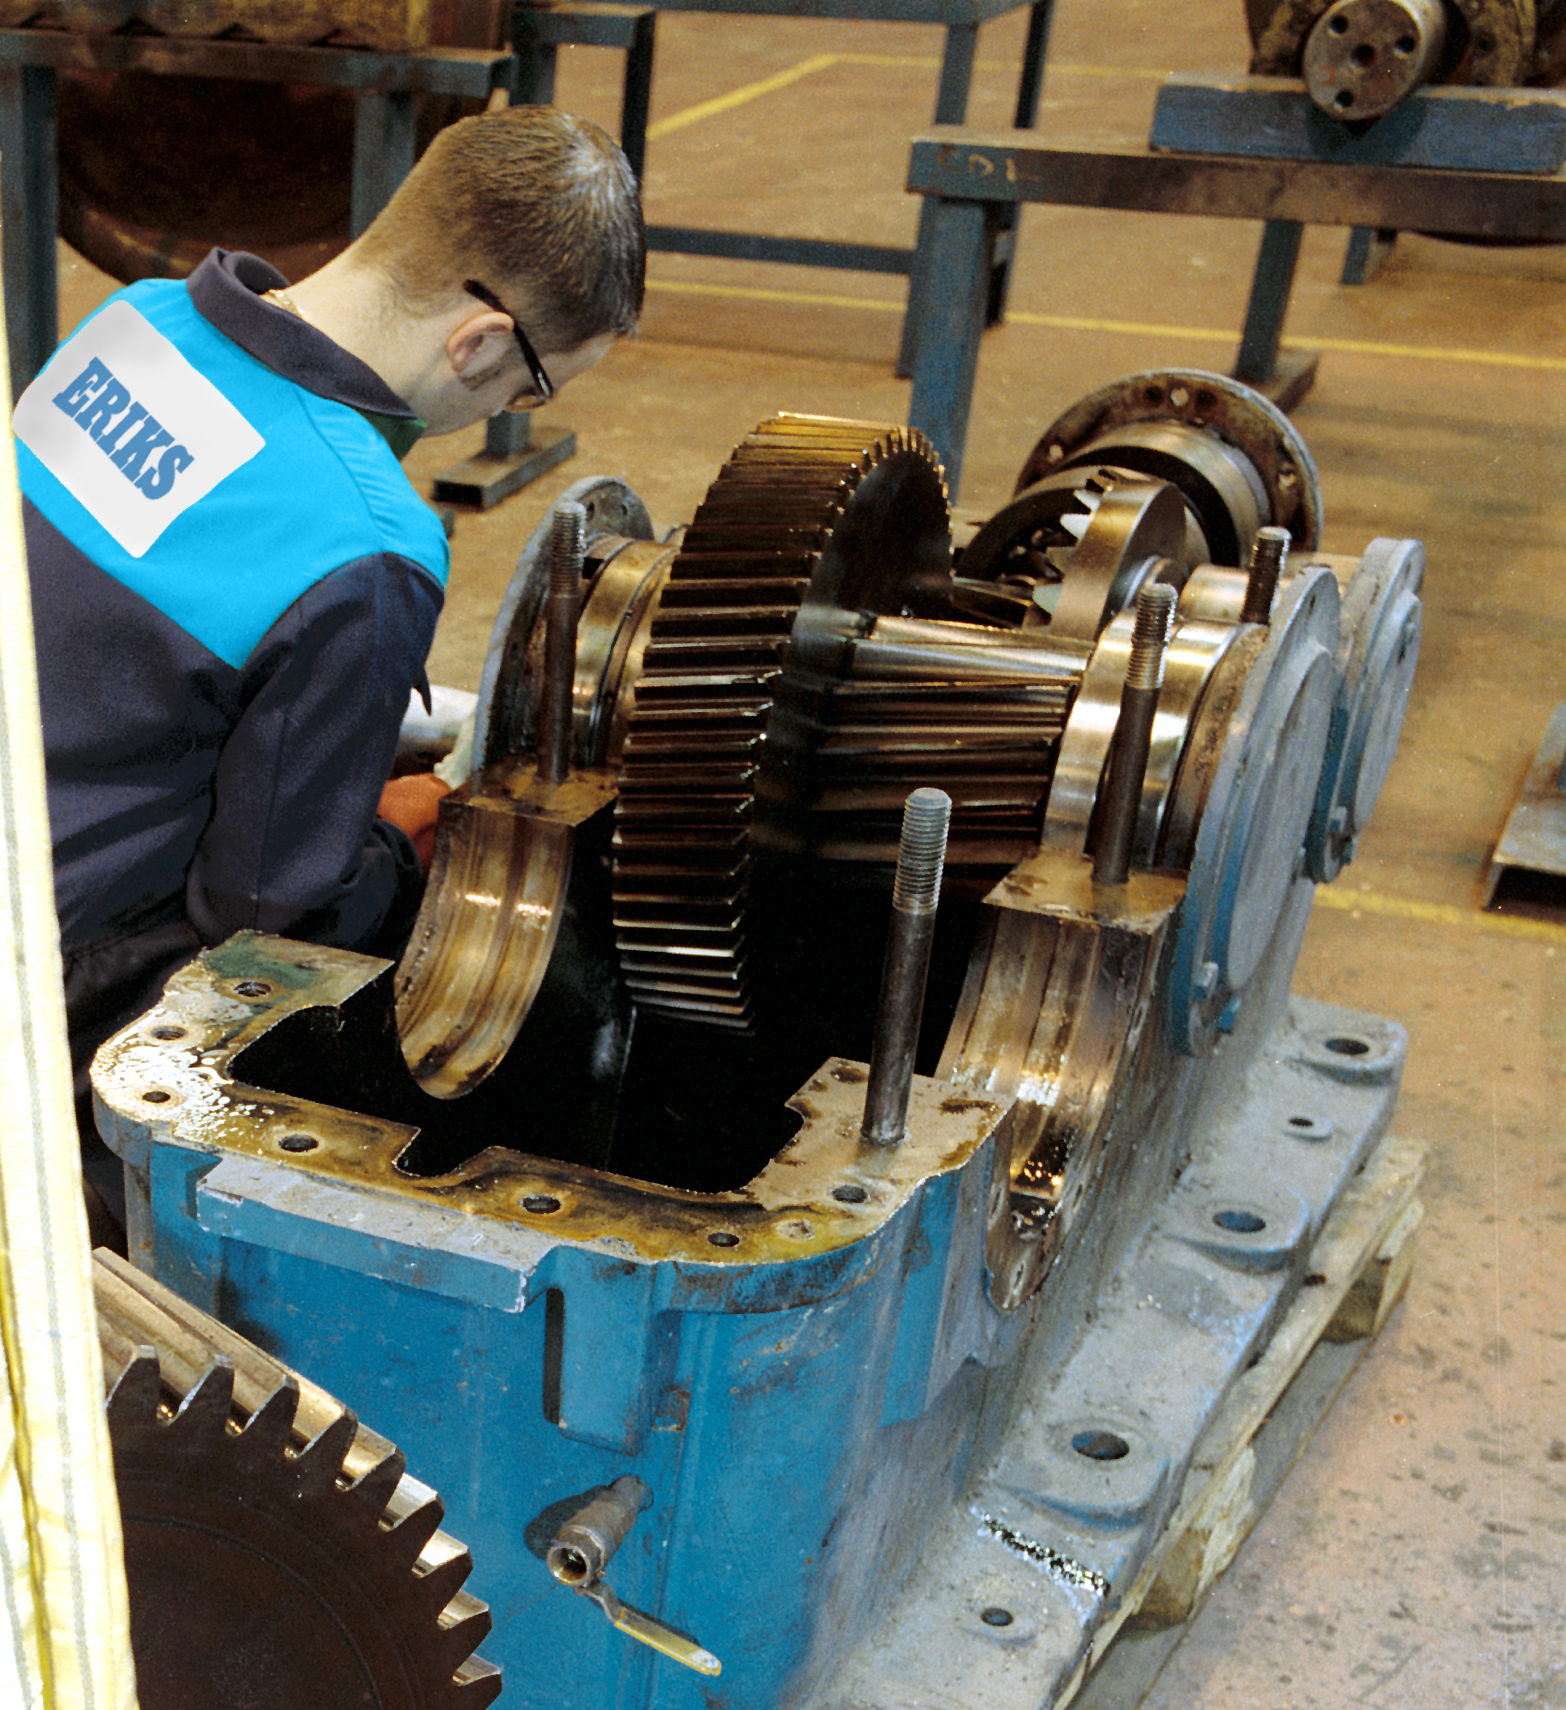 Top 10 tips for industrial gearbox inspection and maintenance